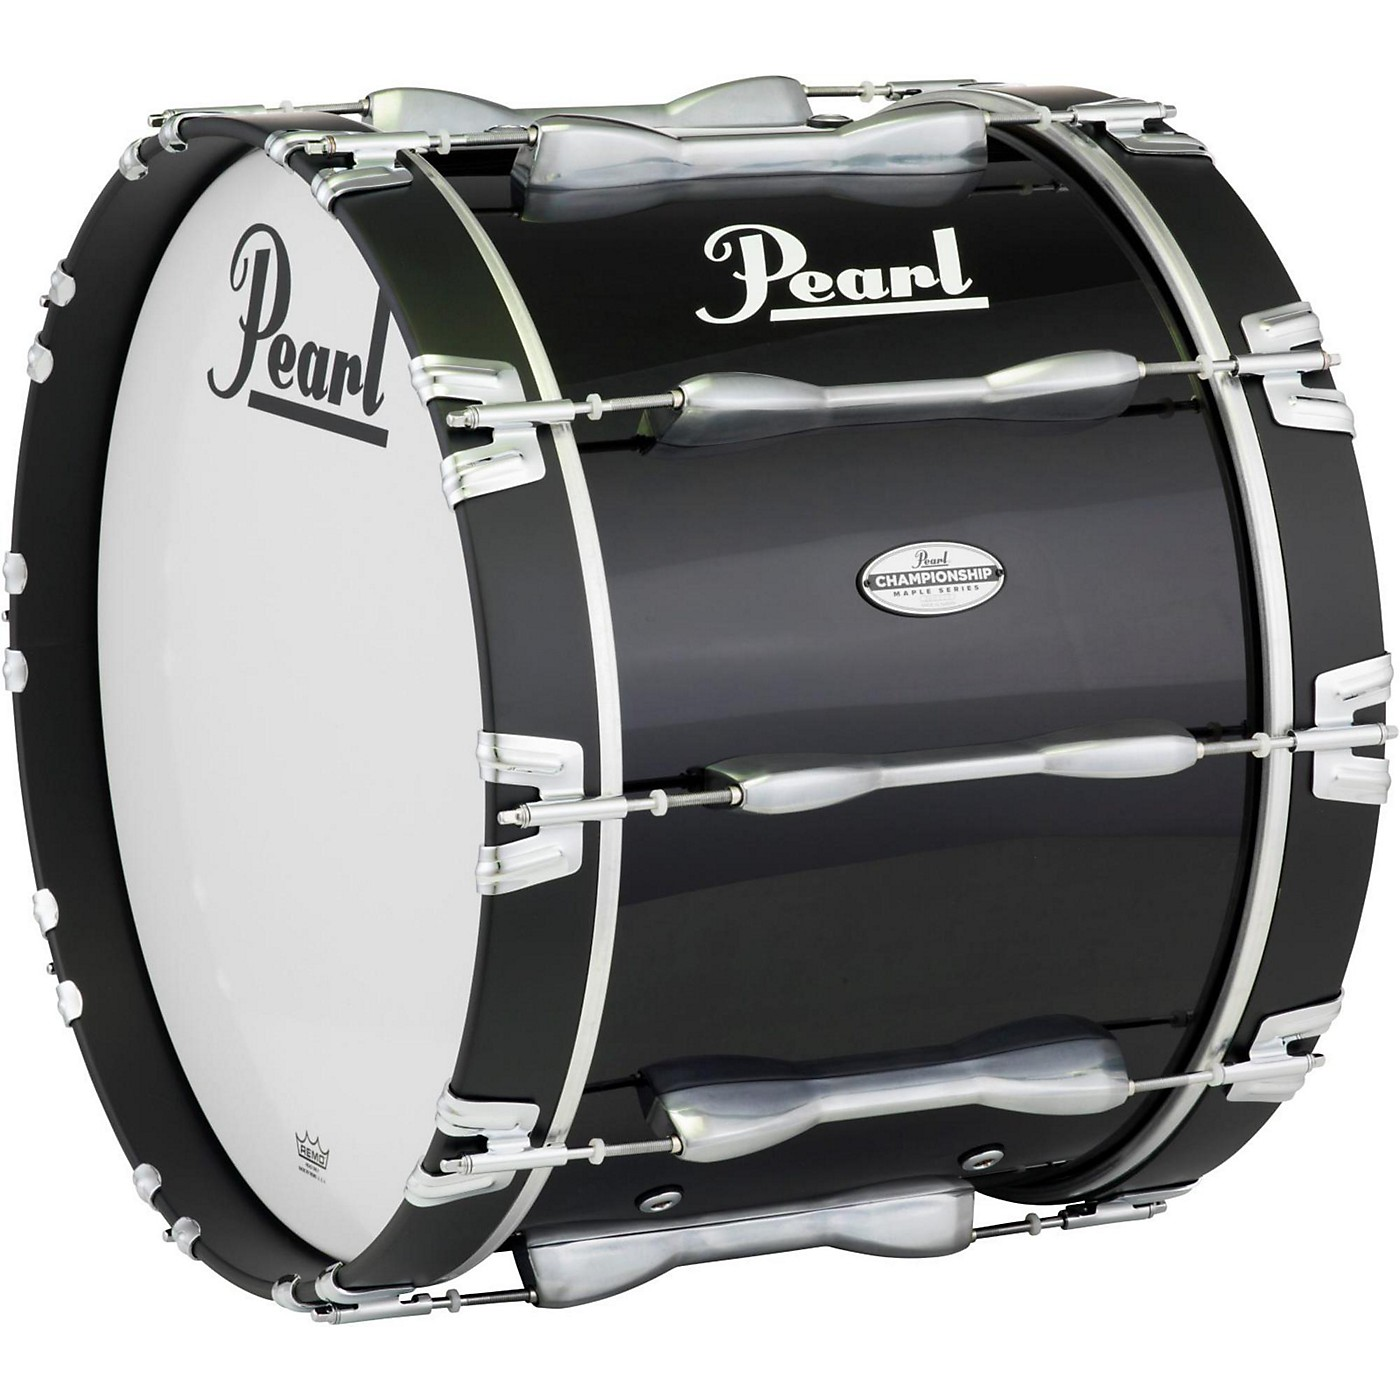 Pearl Championship Maple Marching Bass Drum, 30 x 16 in. thumbnail